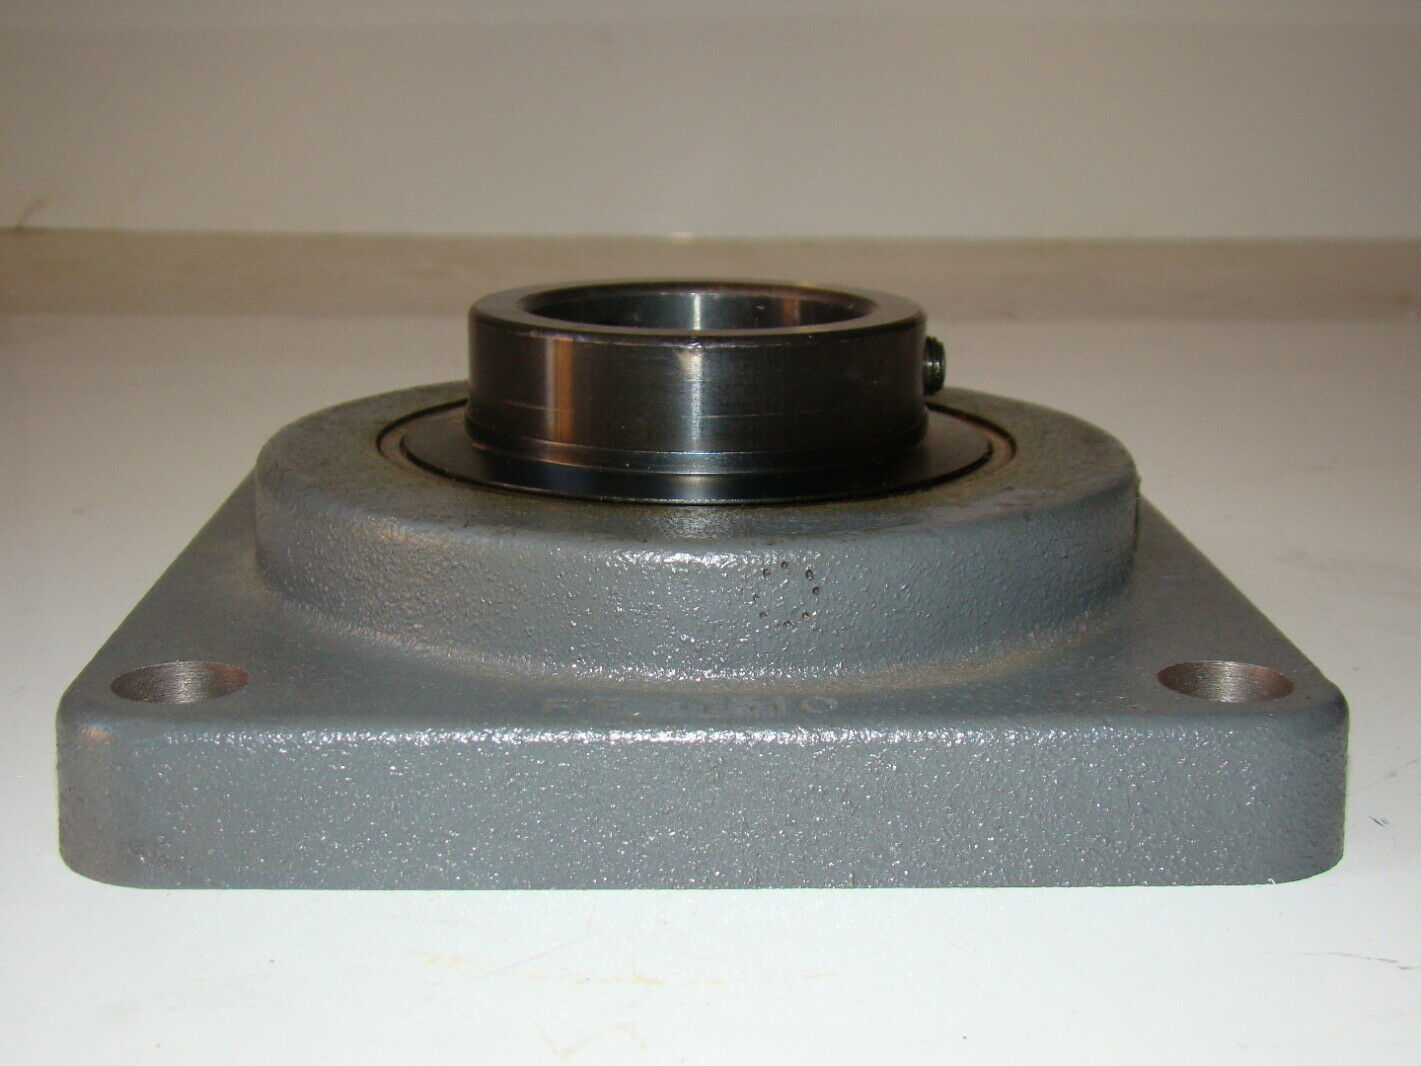 Details about Browning Bearing Unit VS 332 #594F45